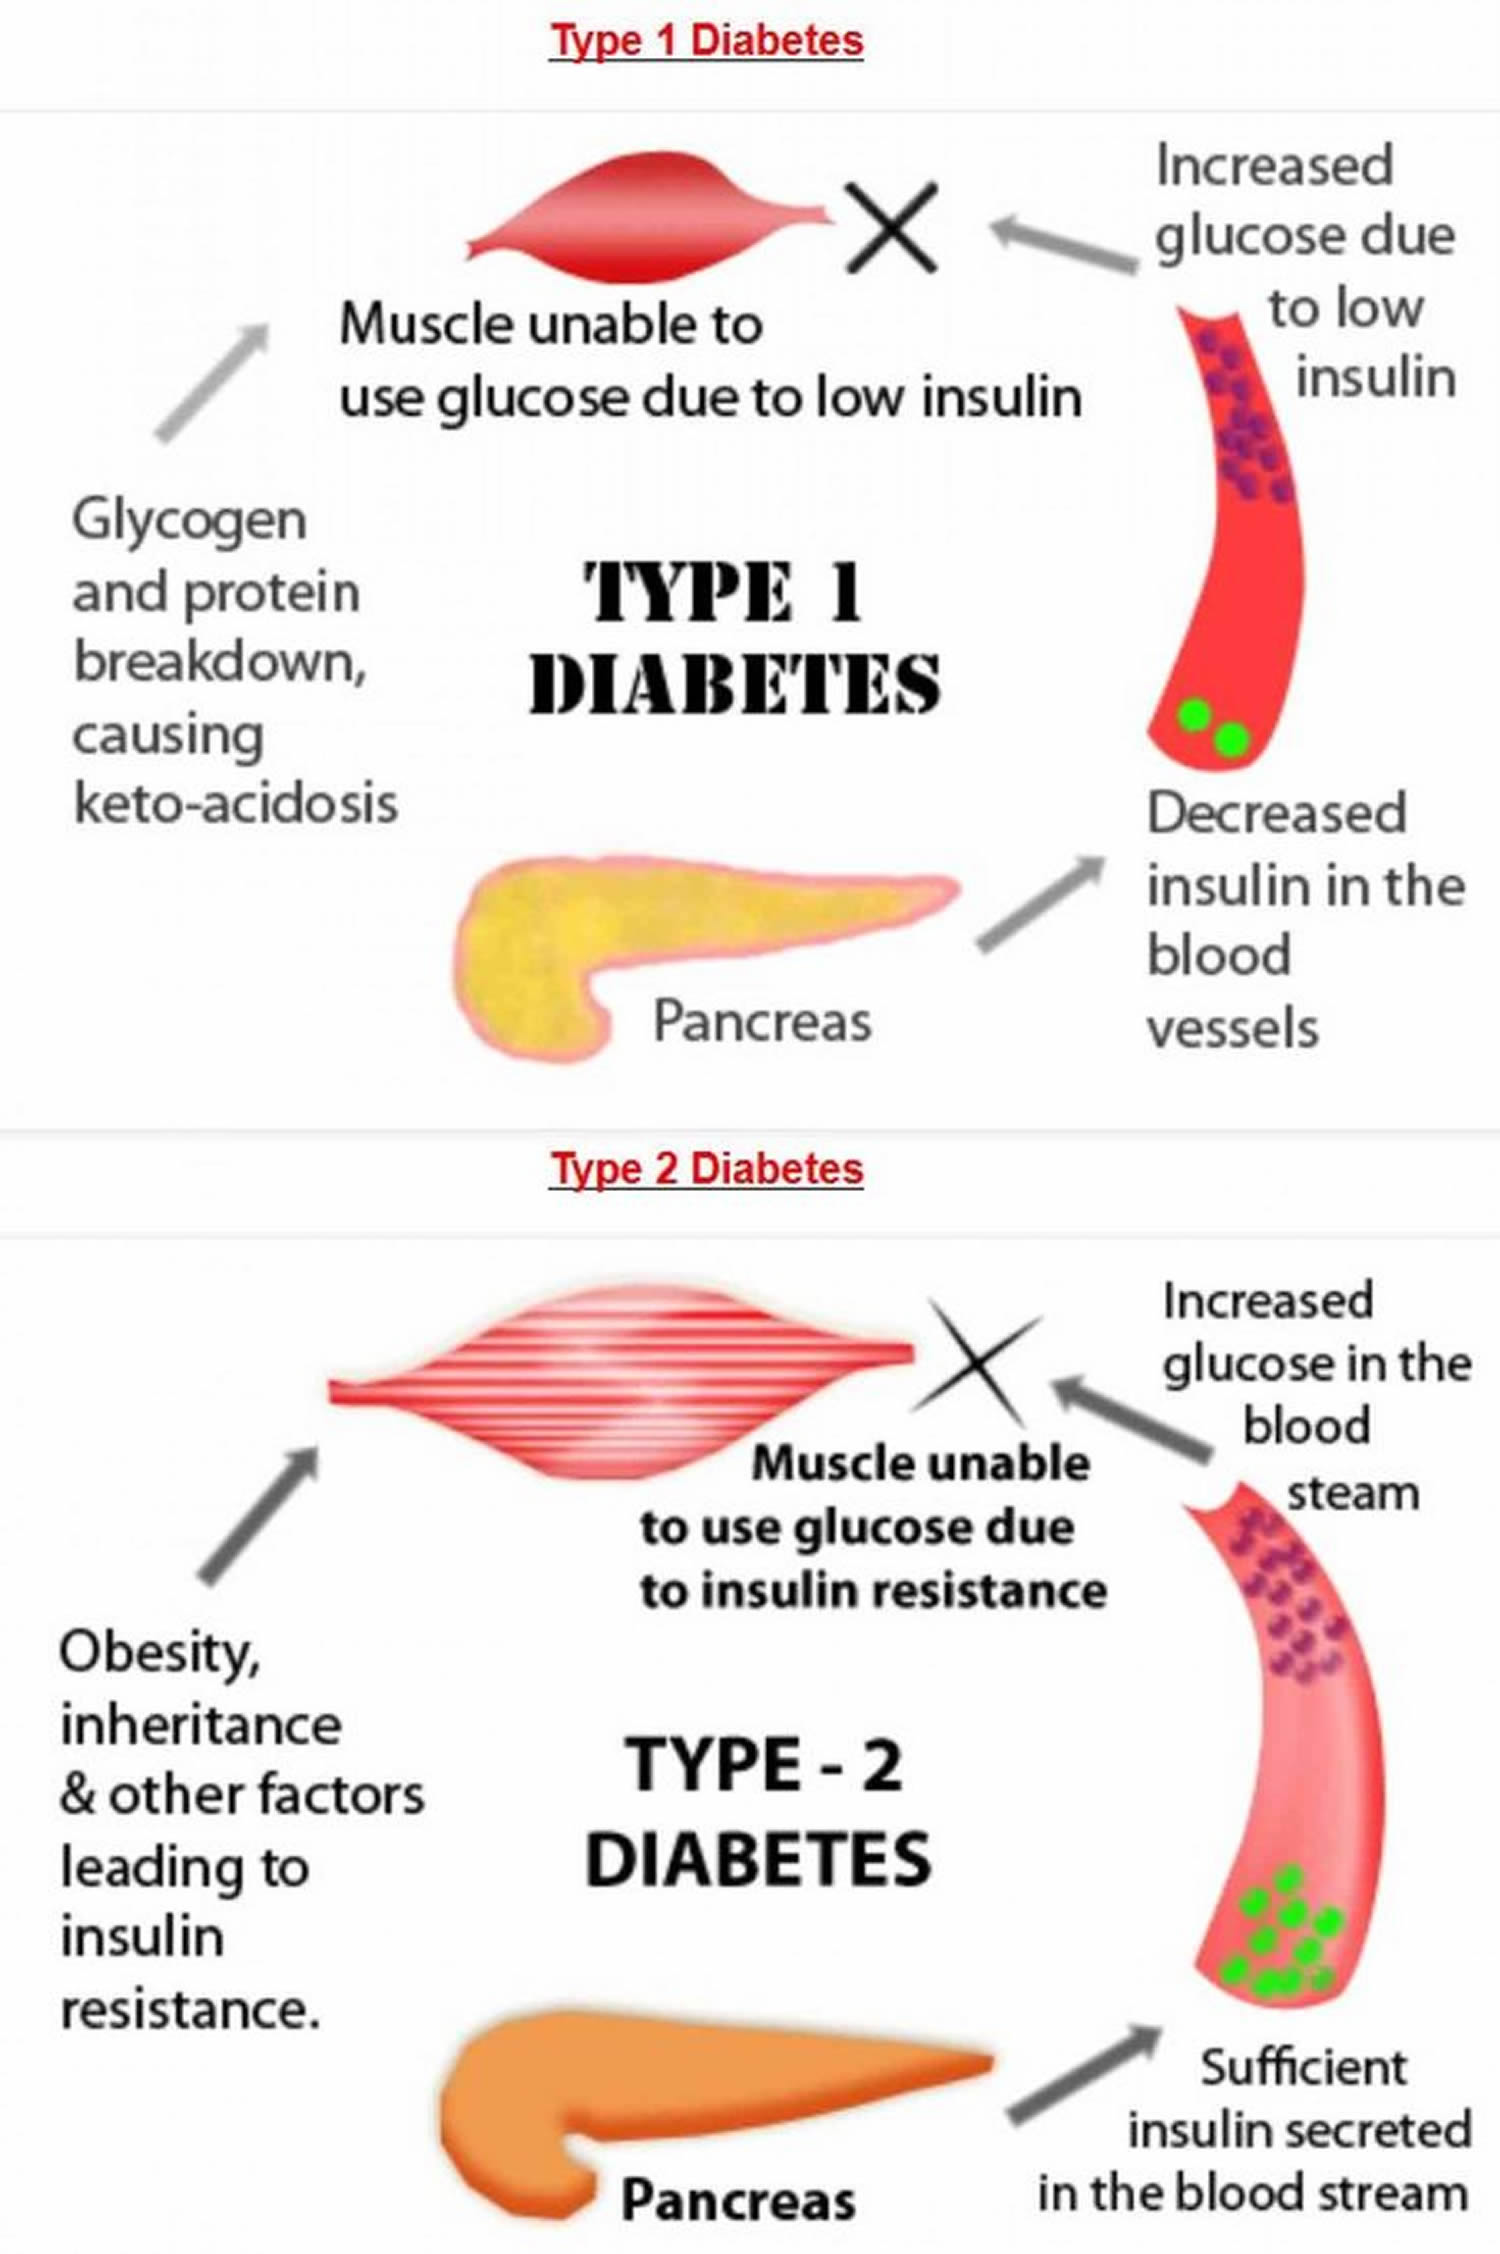 diabetes type 1 and type 2 diabetes